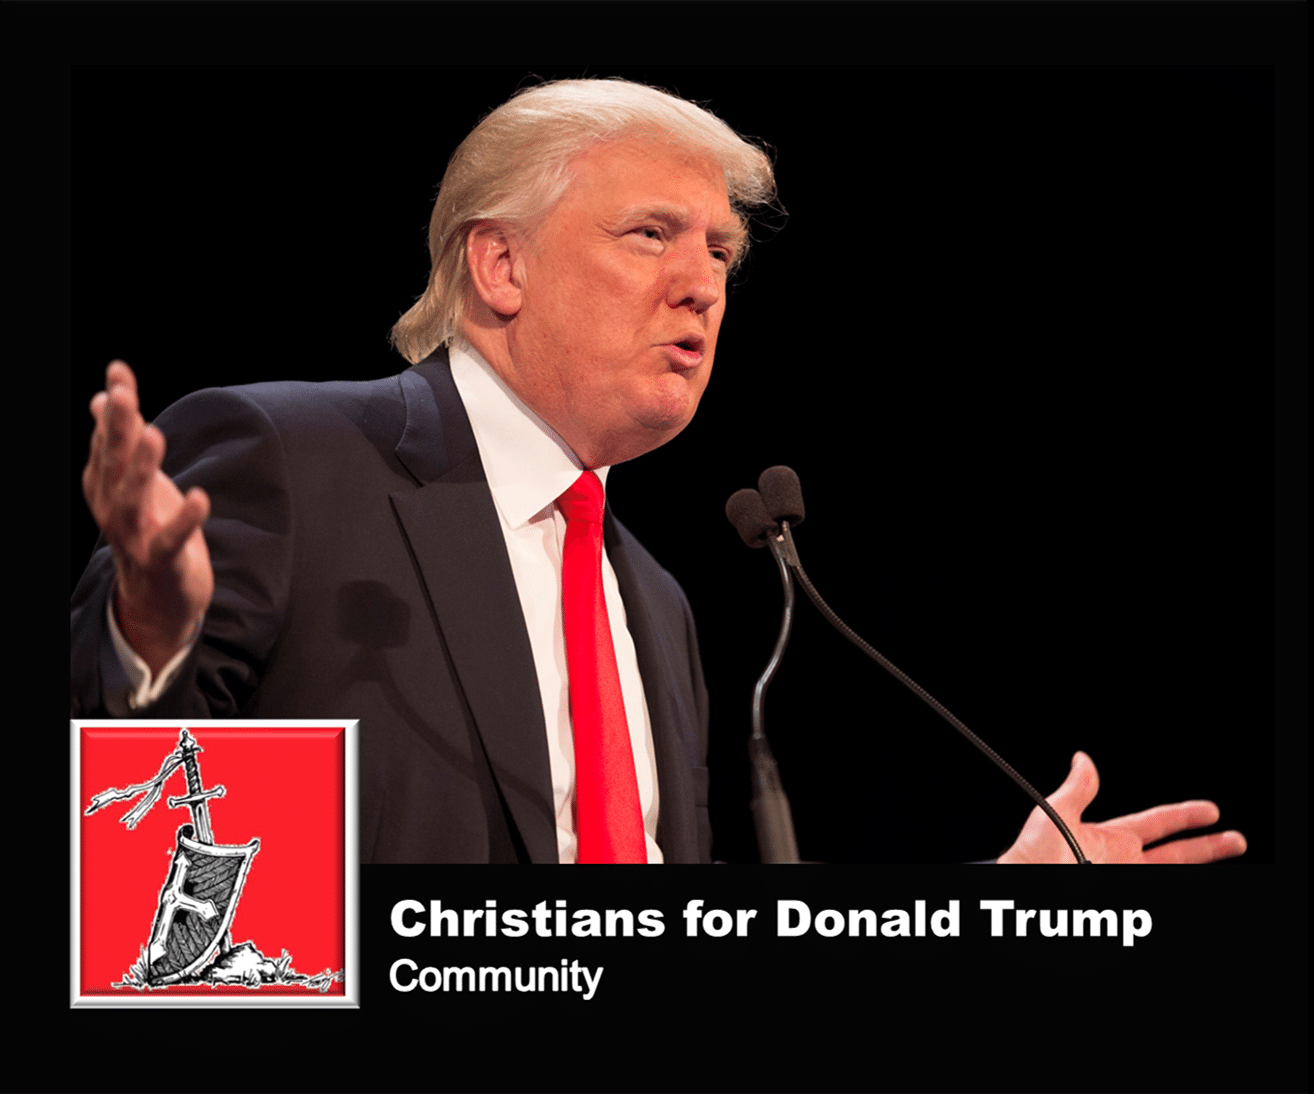 Christians for Donald Trump